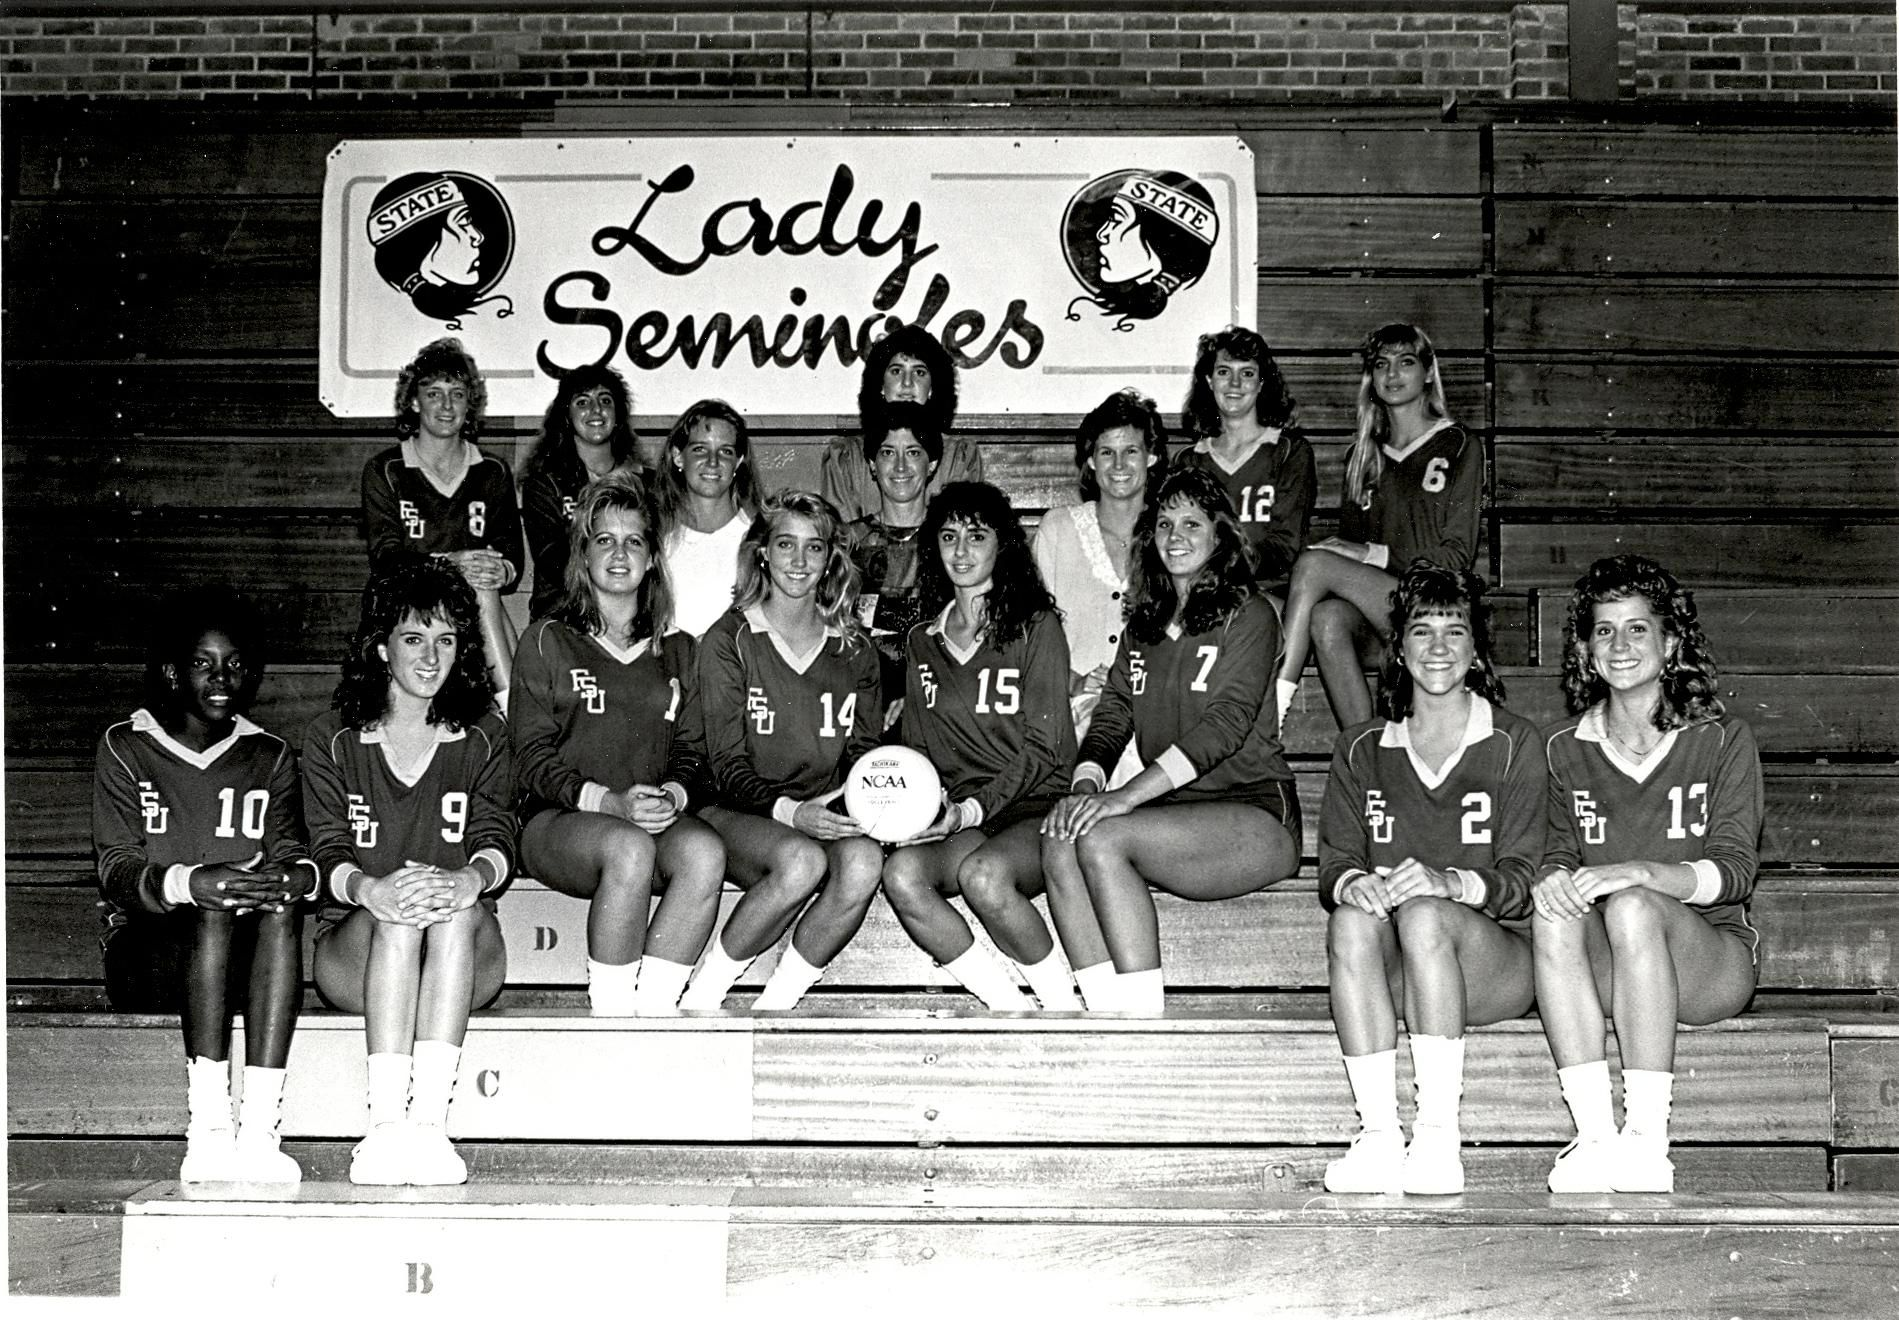 1987 Fsu Women S Volleyball Team Women Volleyball Volleyball Team Volleyball